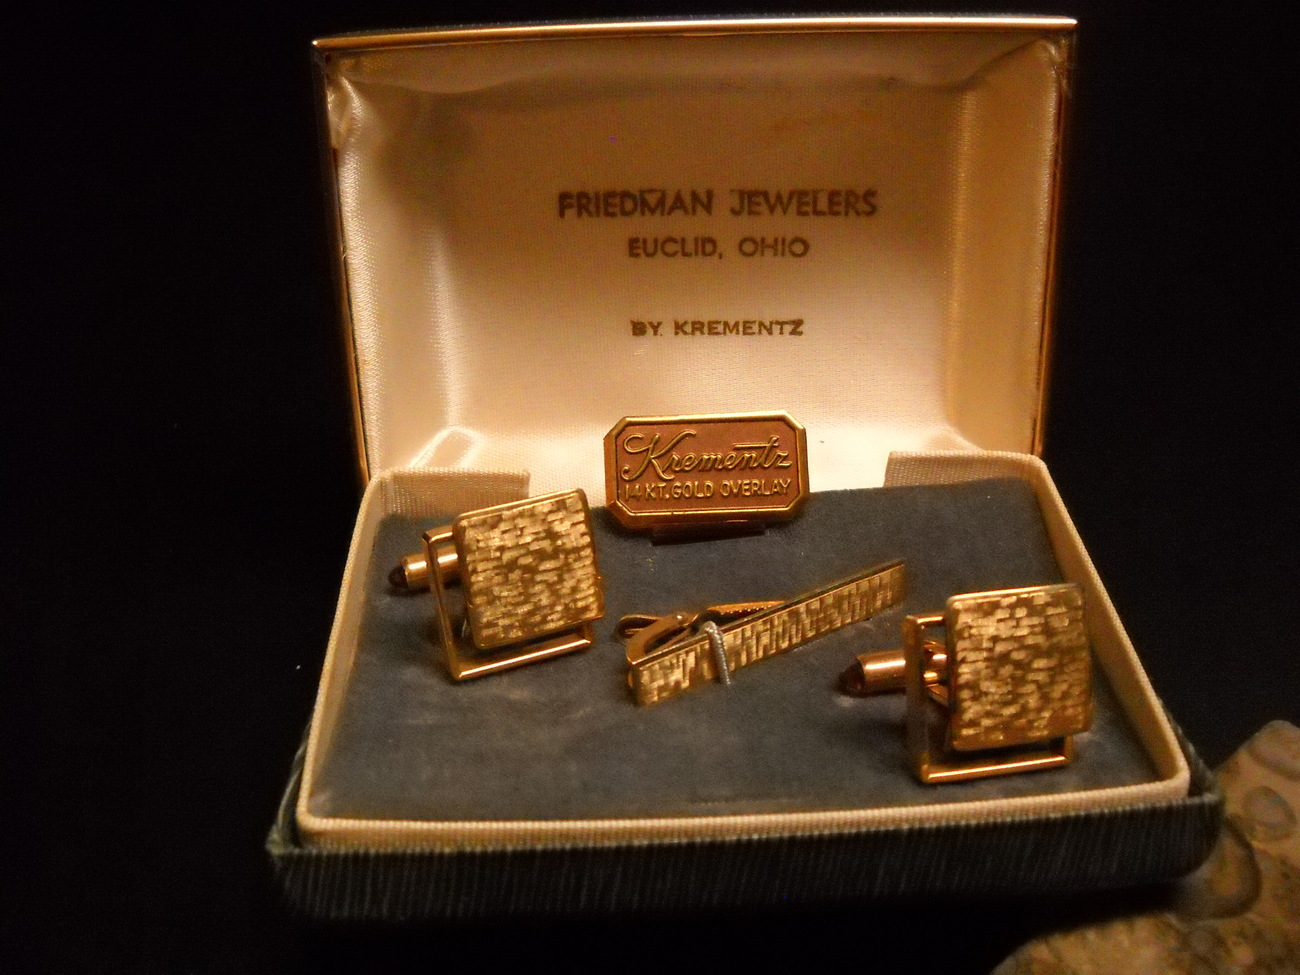 Krementz Cuff Links Tie Bar Square Amber 14 Kt Gold Overlay in Presentation Box